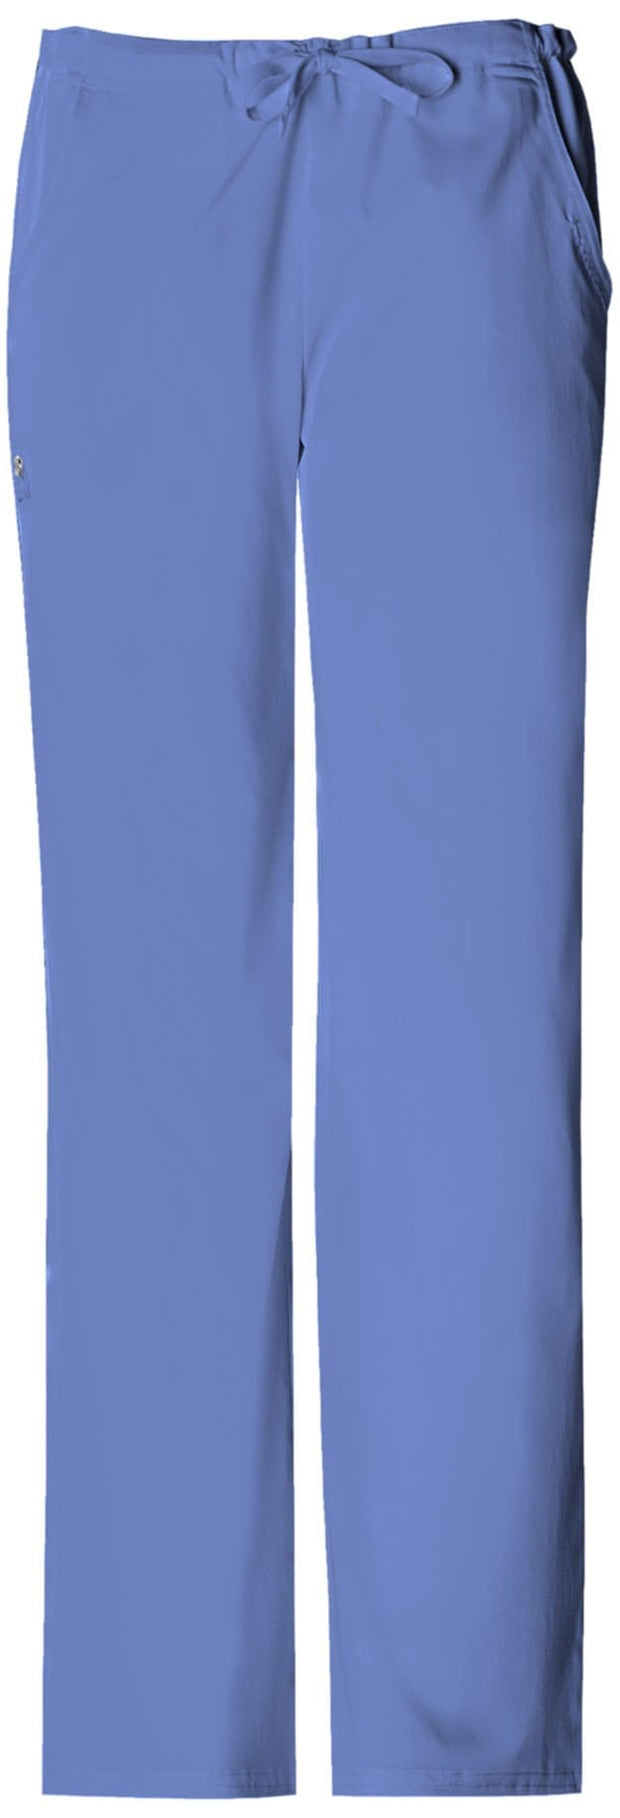 1066P Low Rise Straight Leg Drawstring Pant (Petite)